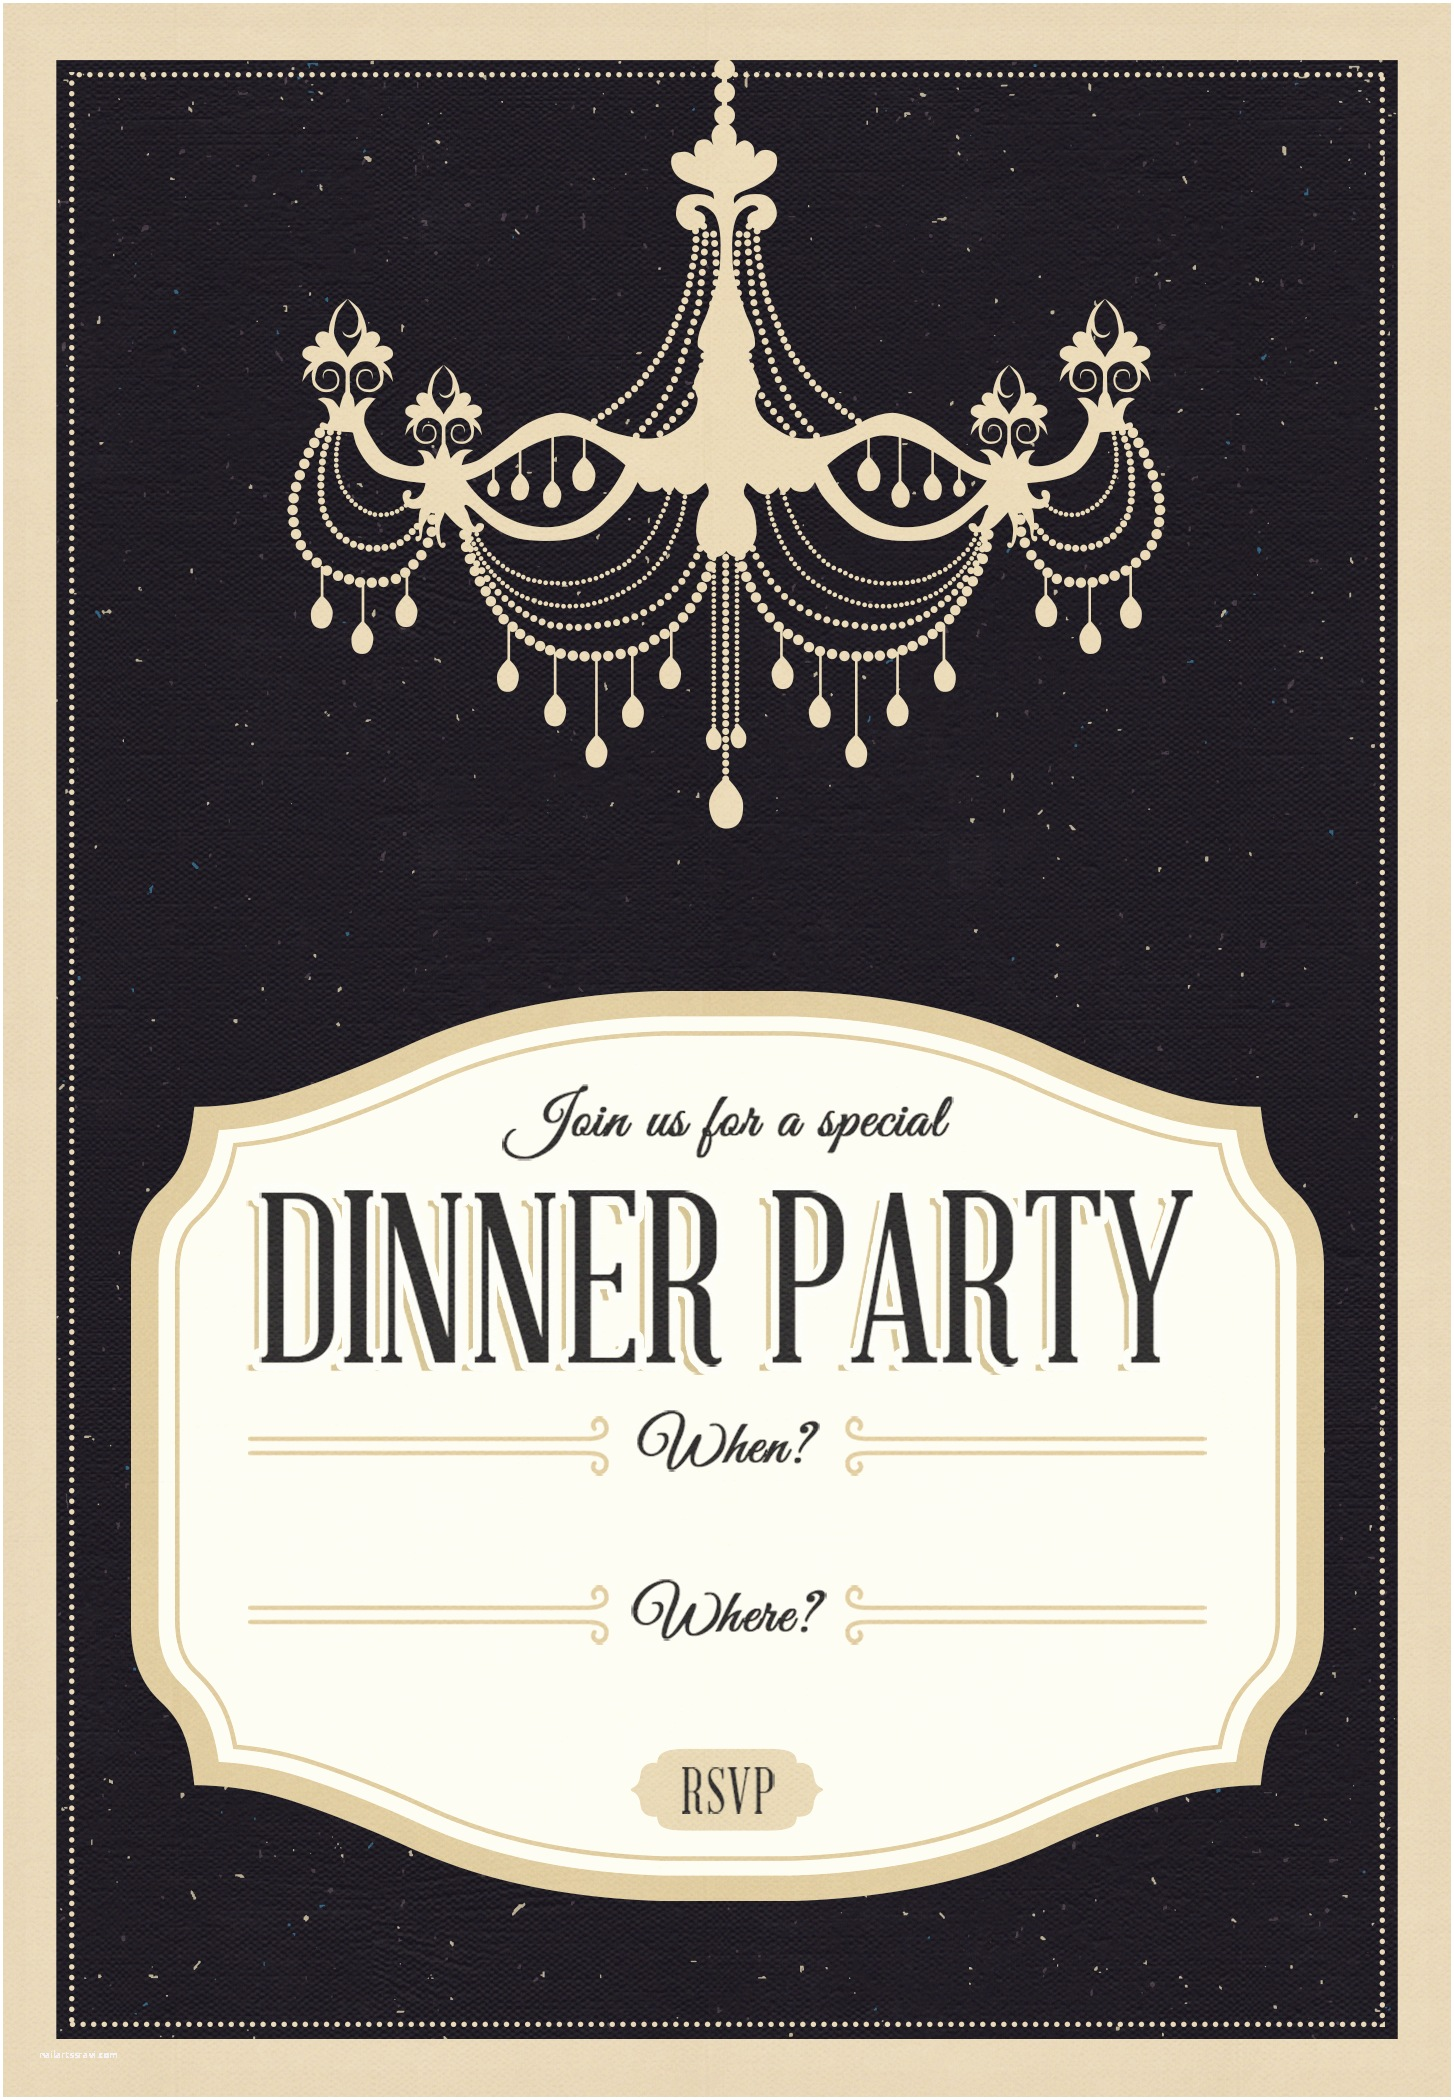 Dinner Party Invitation Template Classy Chandelier Free Printable Dinner Party Invitation